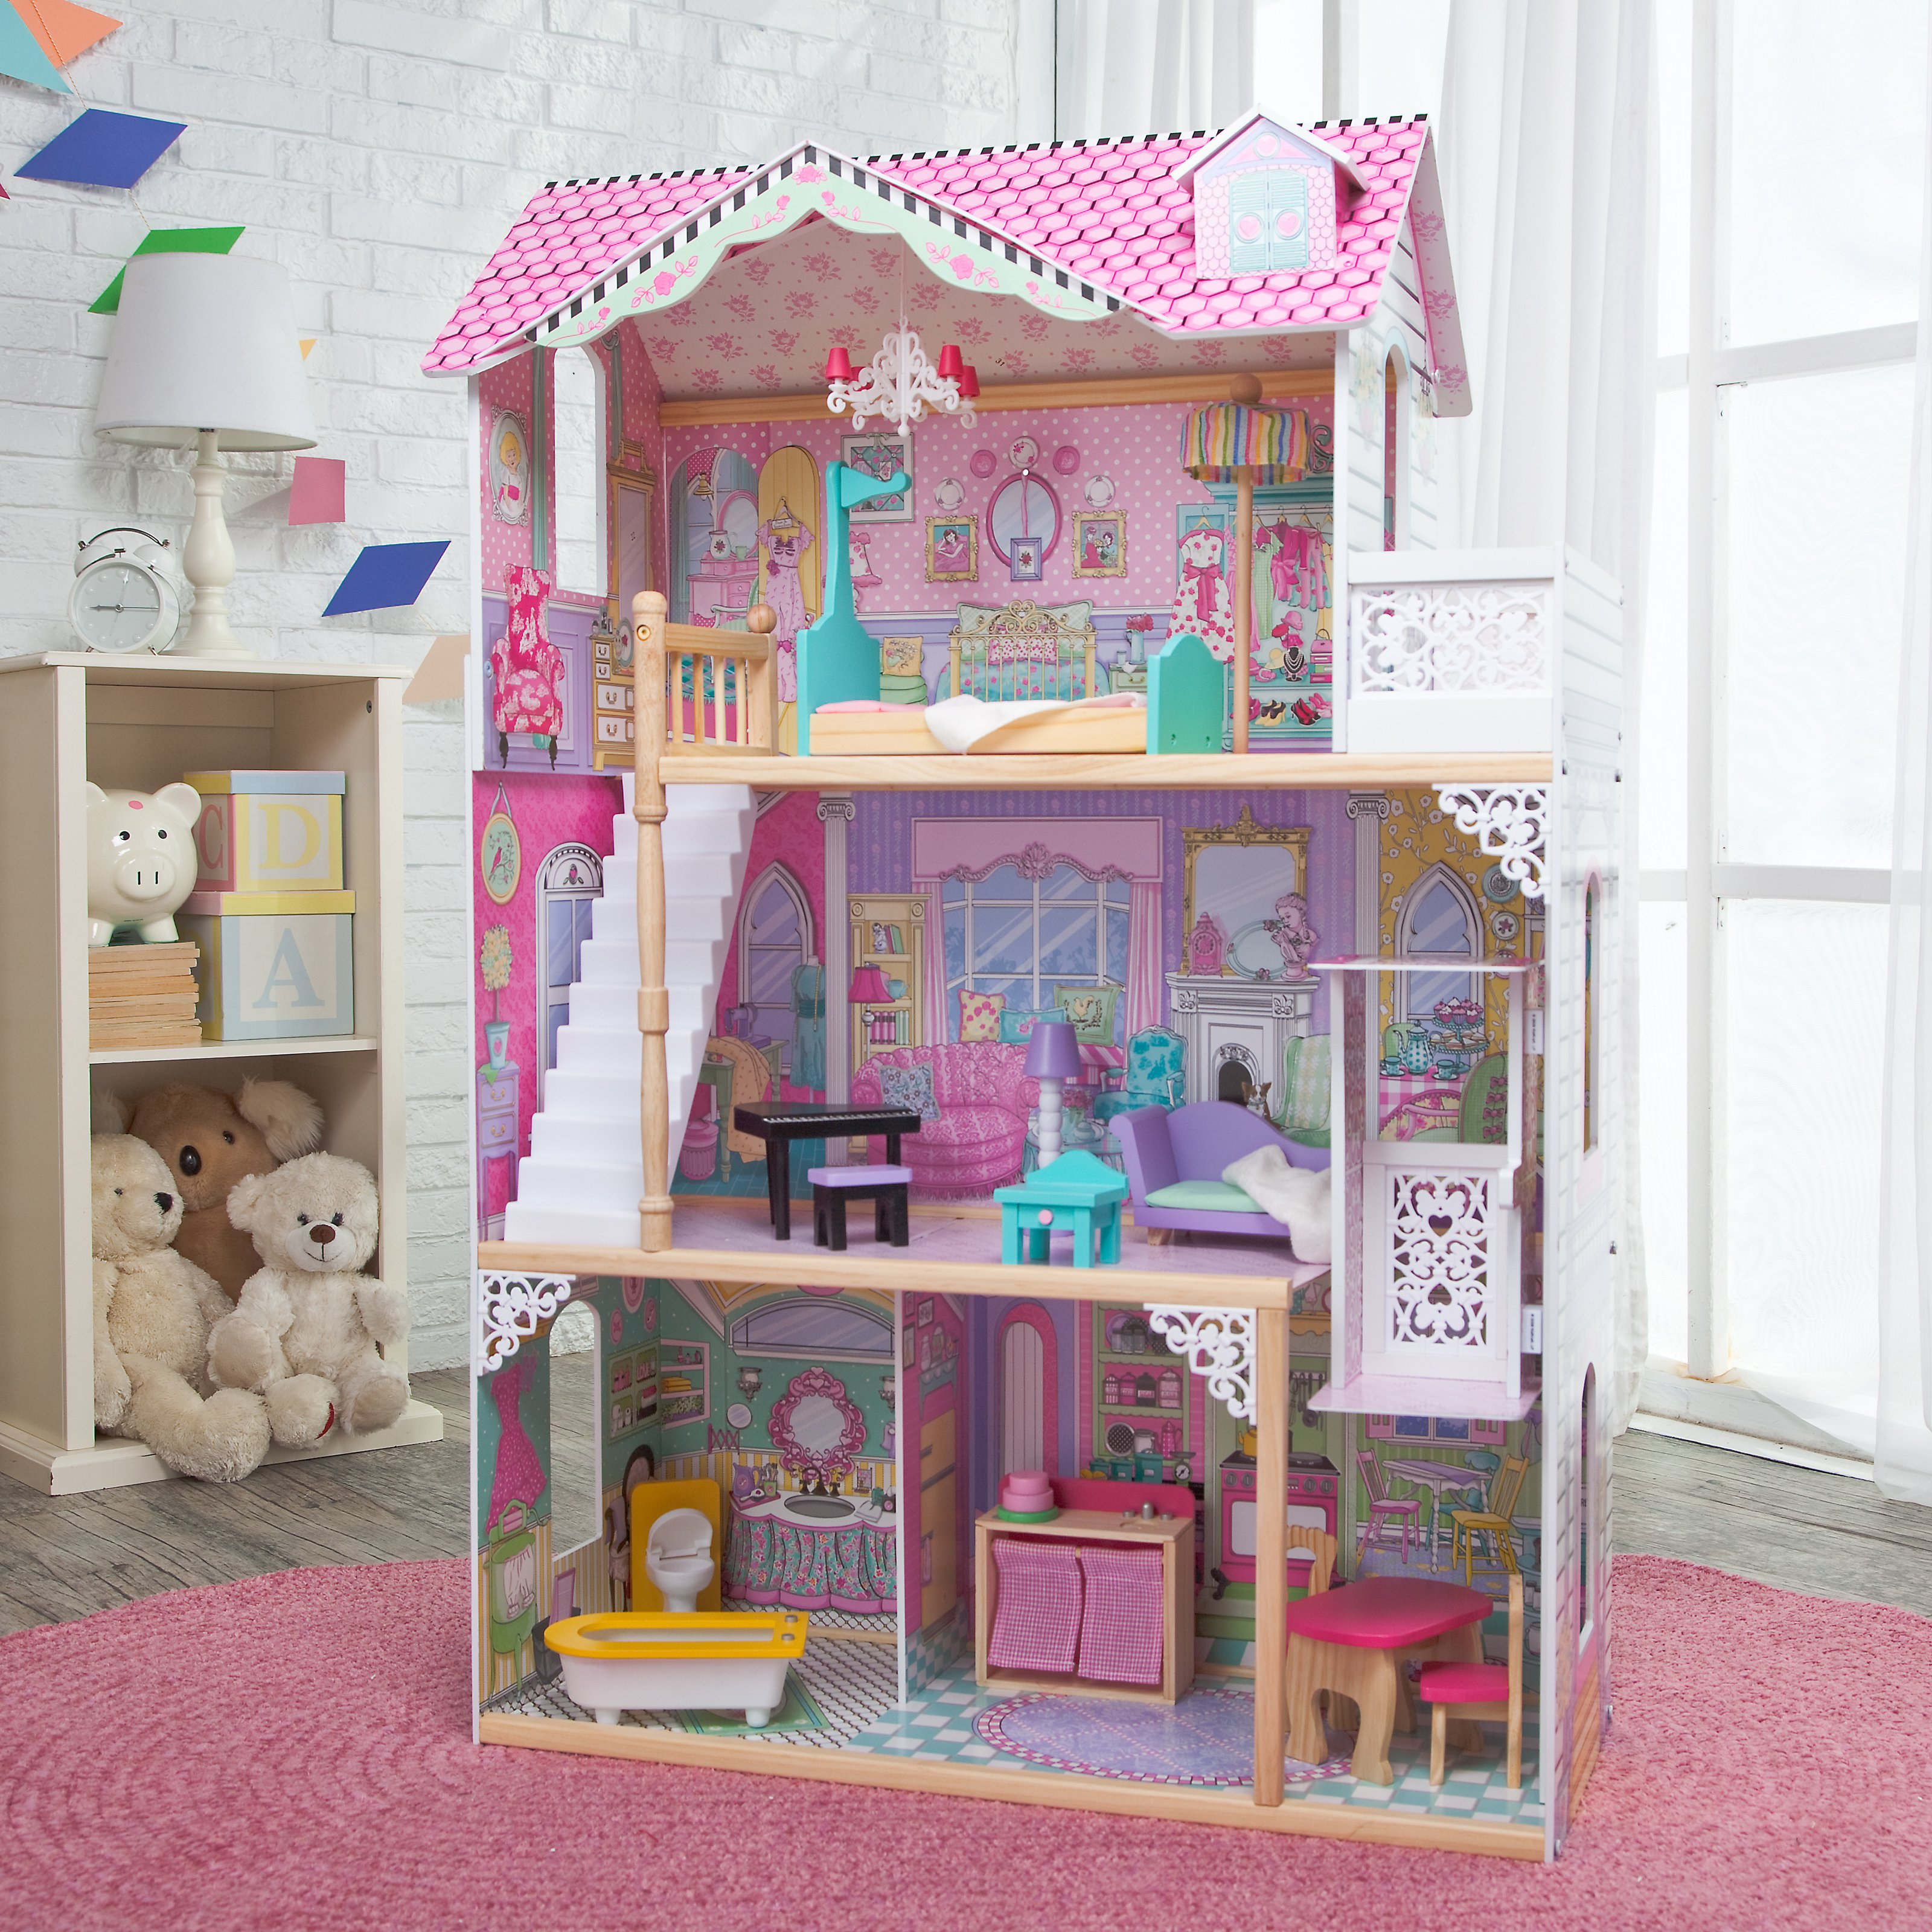 pretty kidkraft dollhouse made of wood in triple tier design with pink roof on pink rug for nursery decor ideas